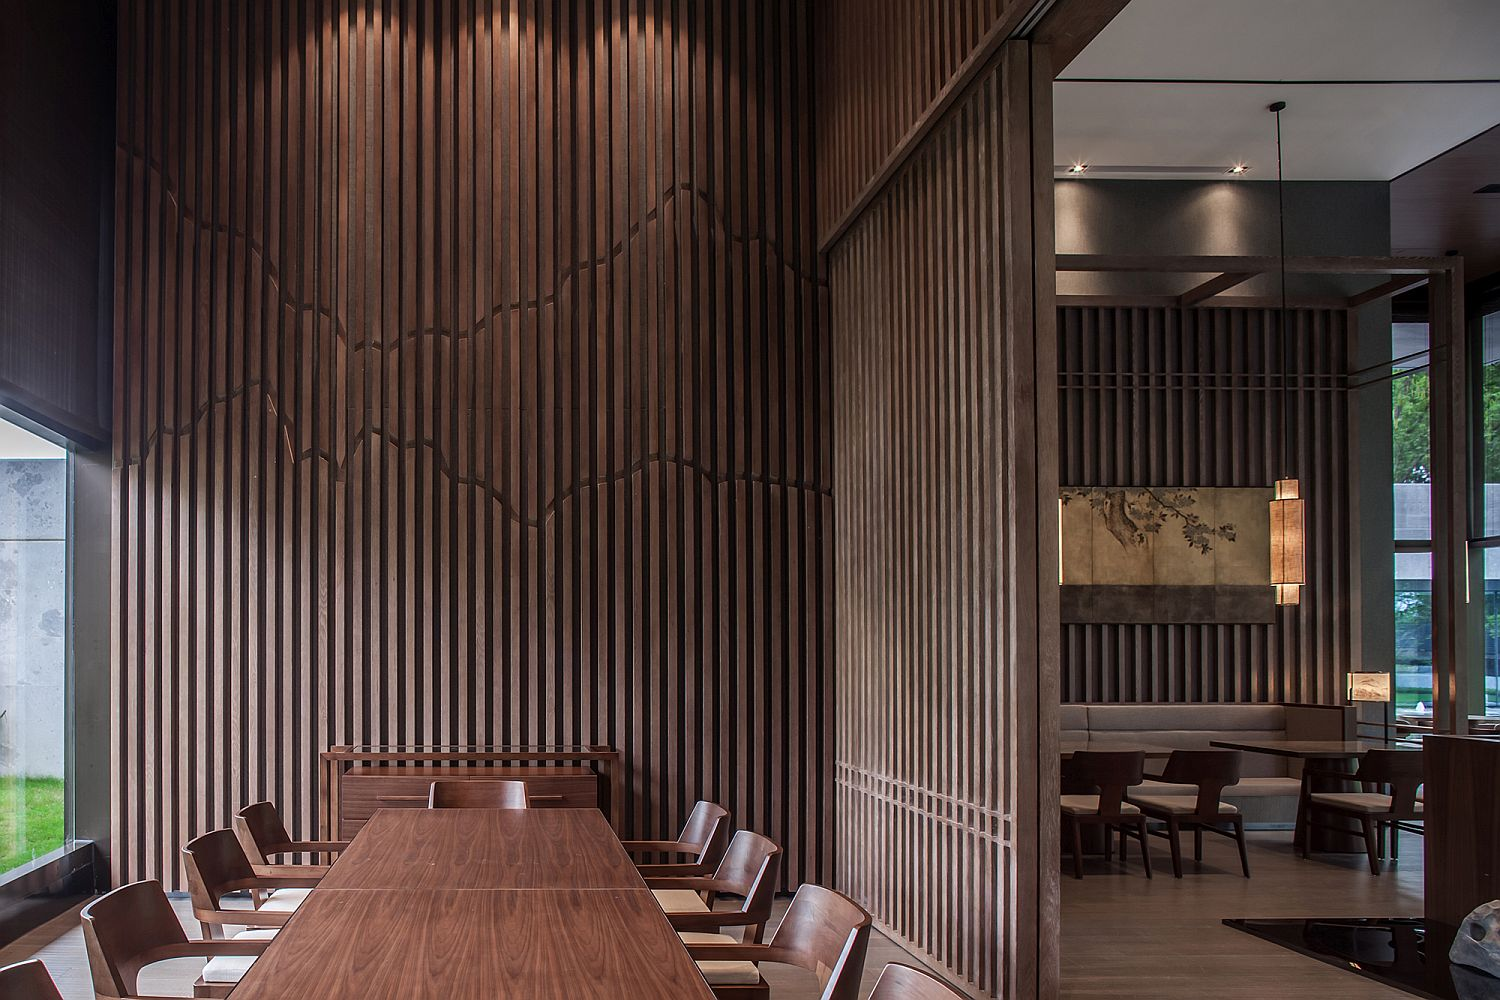 Vertical wooden slats bring the image of forest indoors